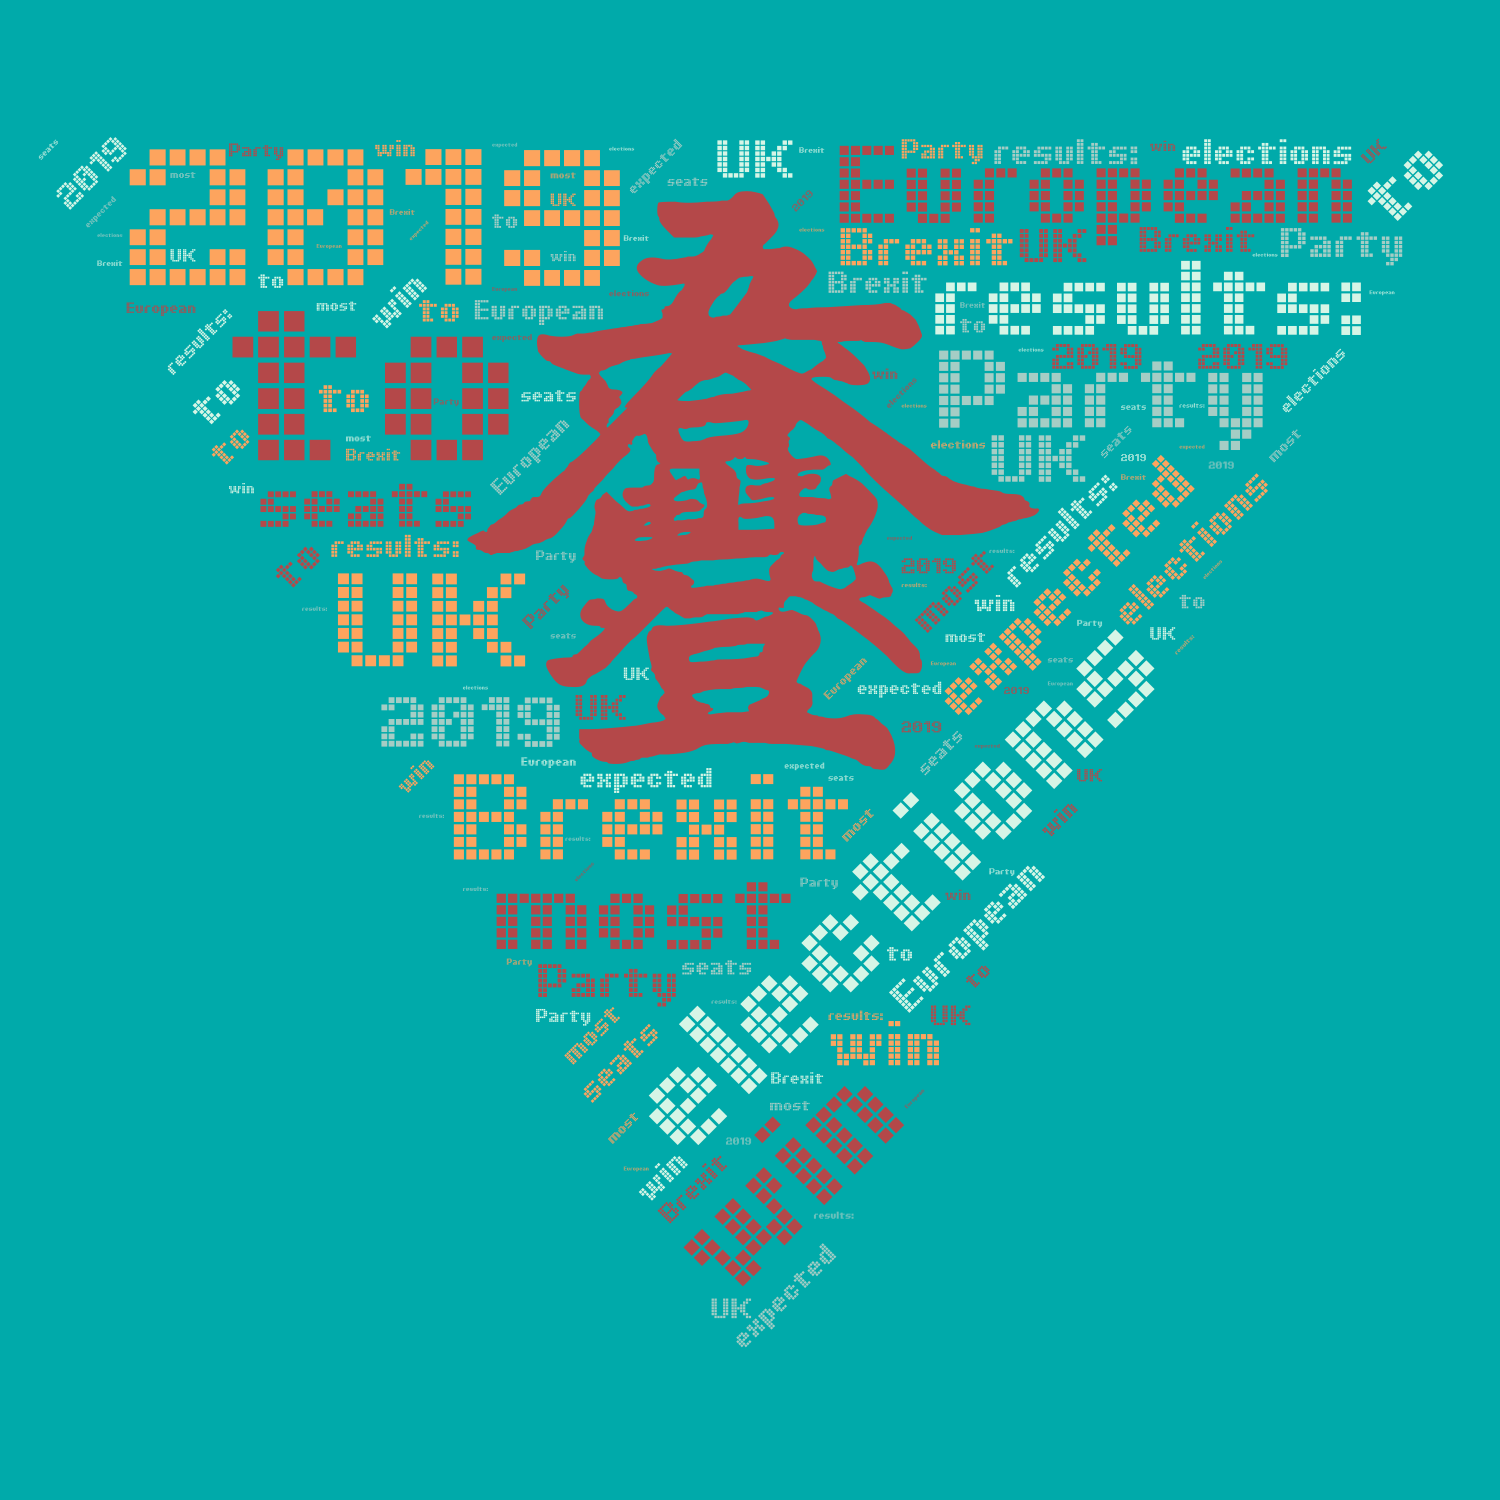 European elections 2019 results: Brexit Party expected to win most UK seats